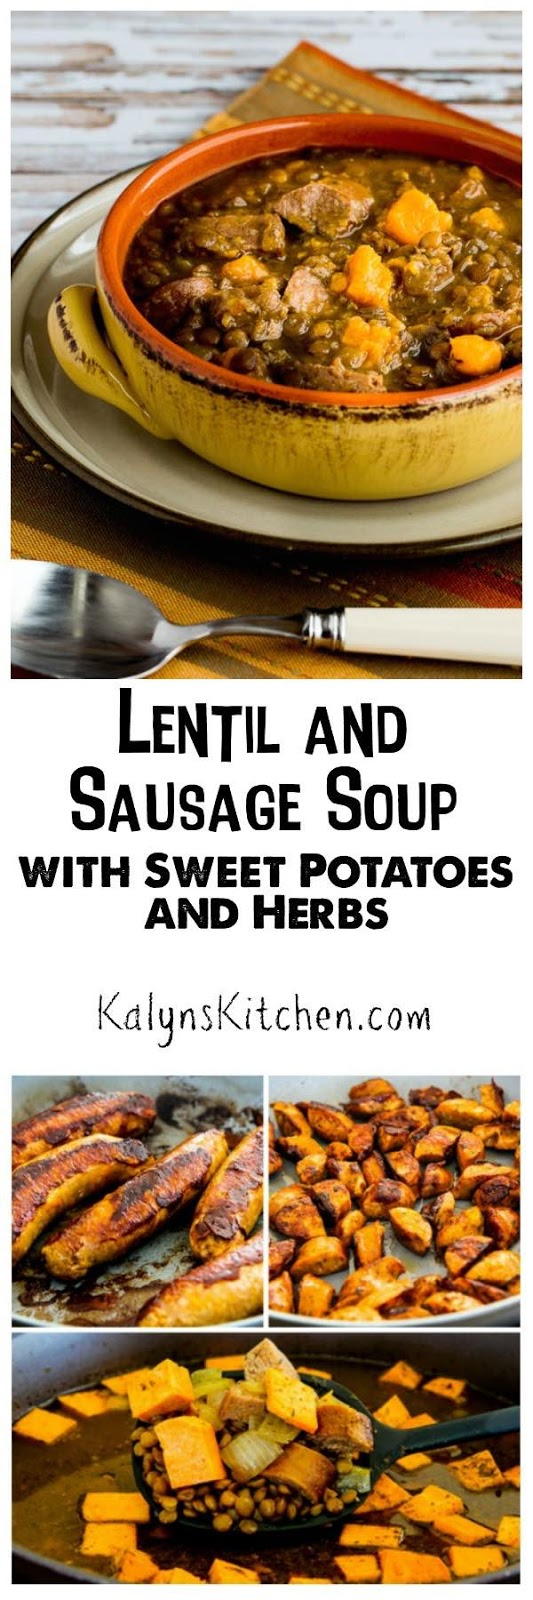 Lentil and Sausage Soup with Sweet Potatoes and Herbs ...